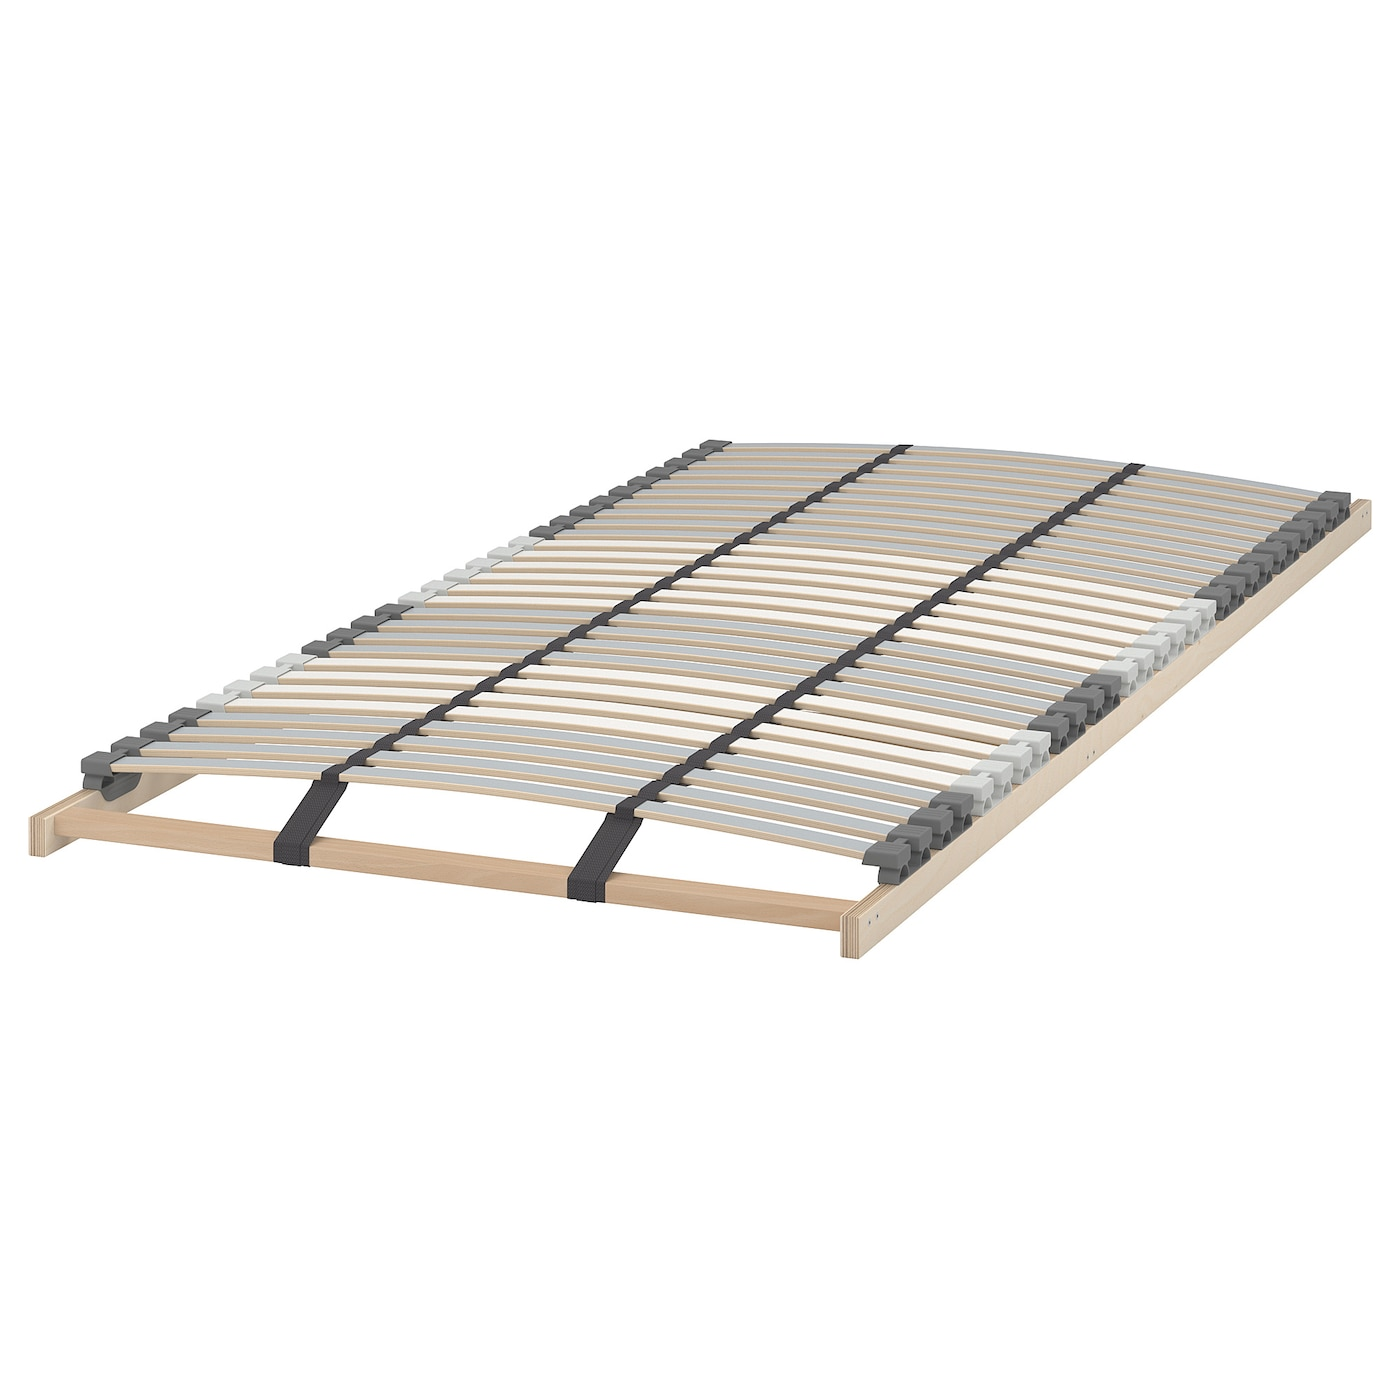 IKEA LÖNSET slatted bed base Comfort zones adjust to your body.